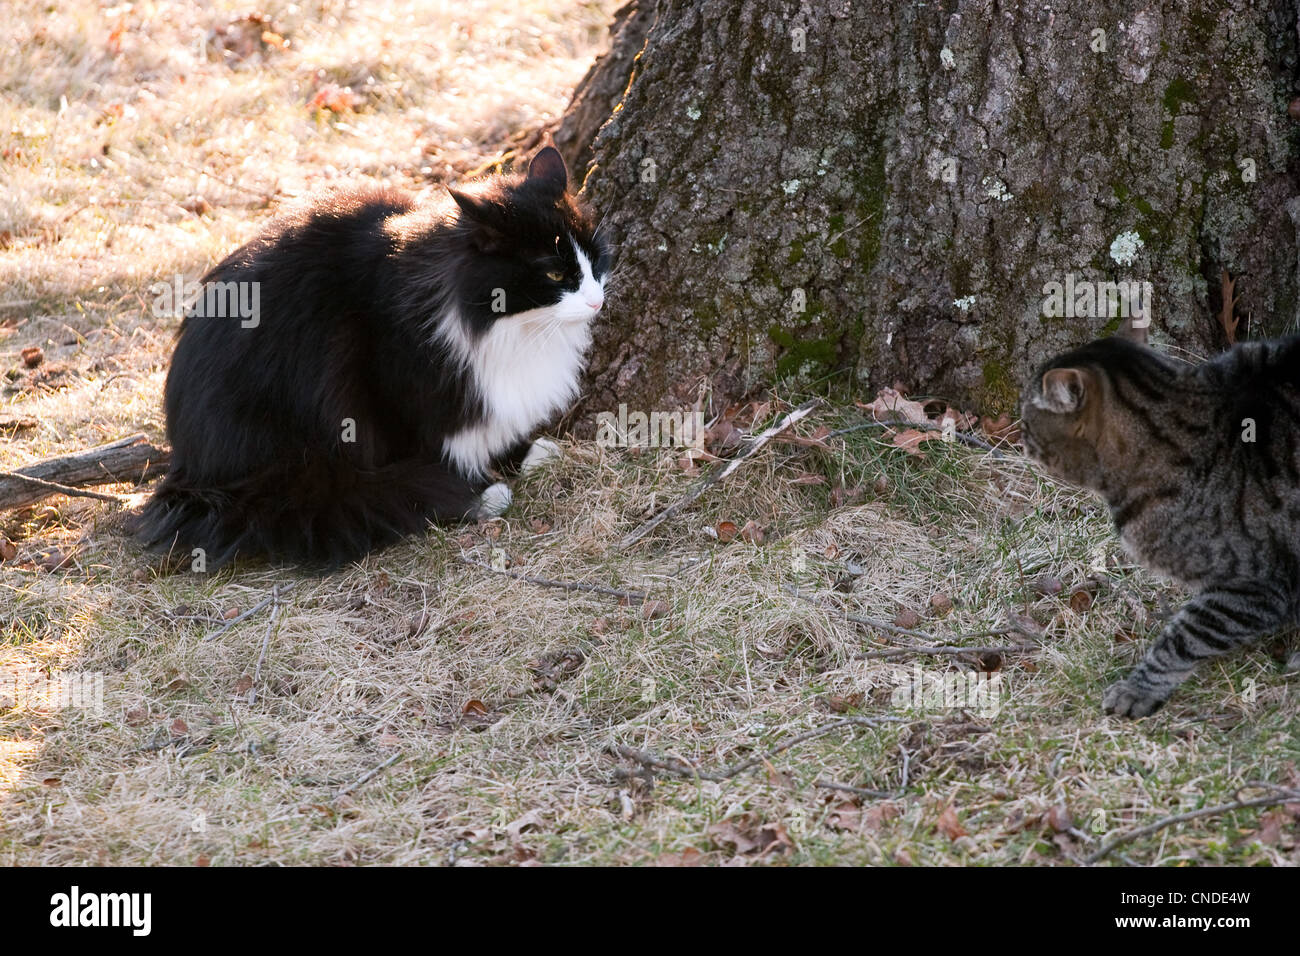 Two outdoor cats staring each other down while having a territorial confrontation. - Stock Image